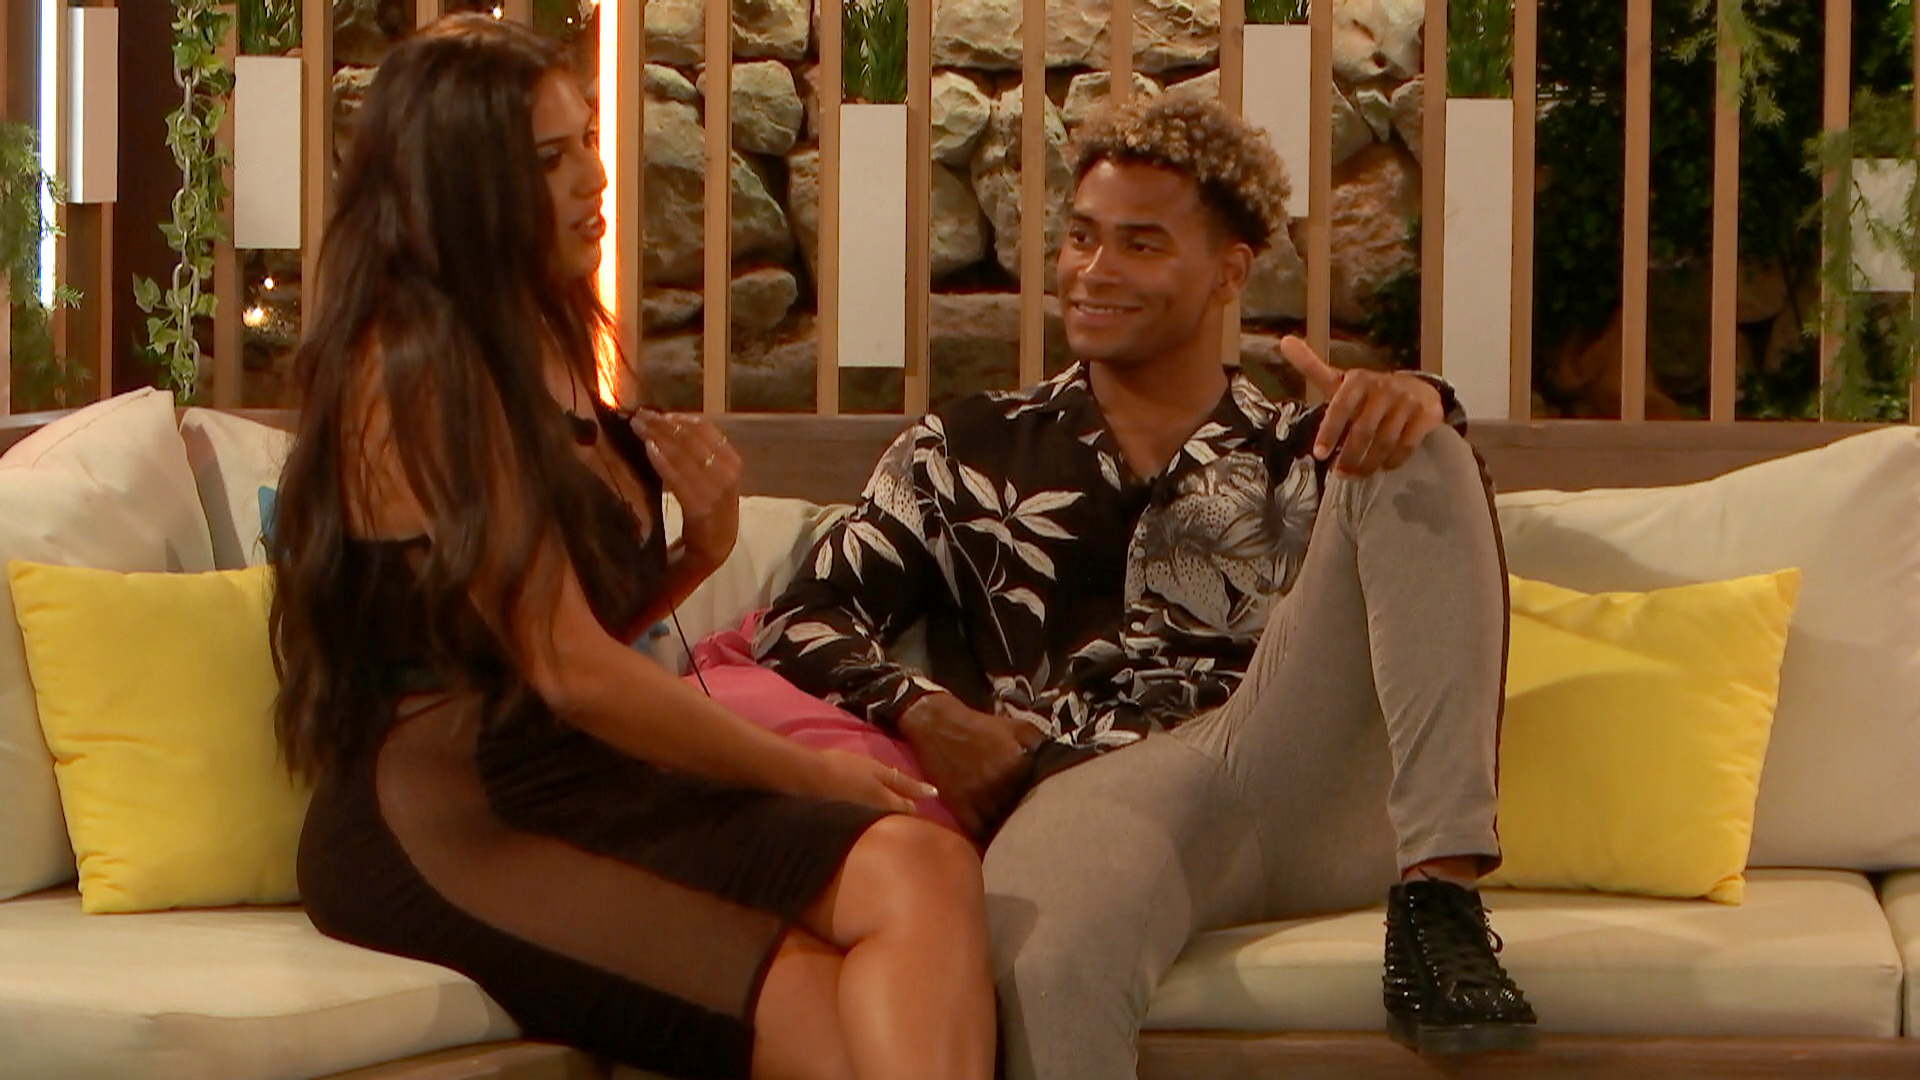 Love Island: Are there still feelings between Michael and Amber?